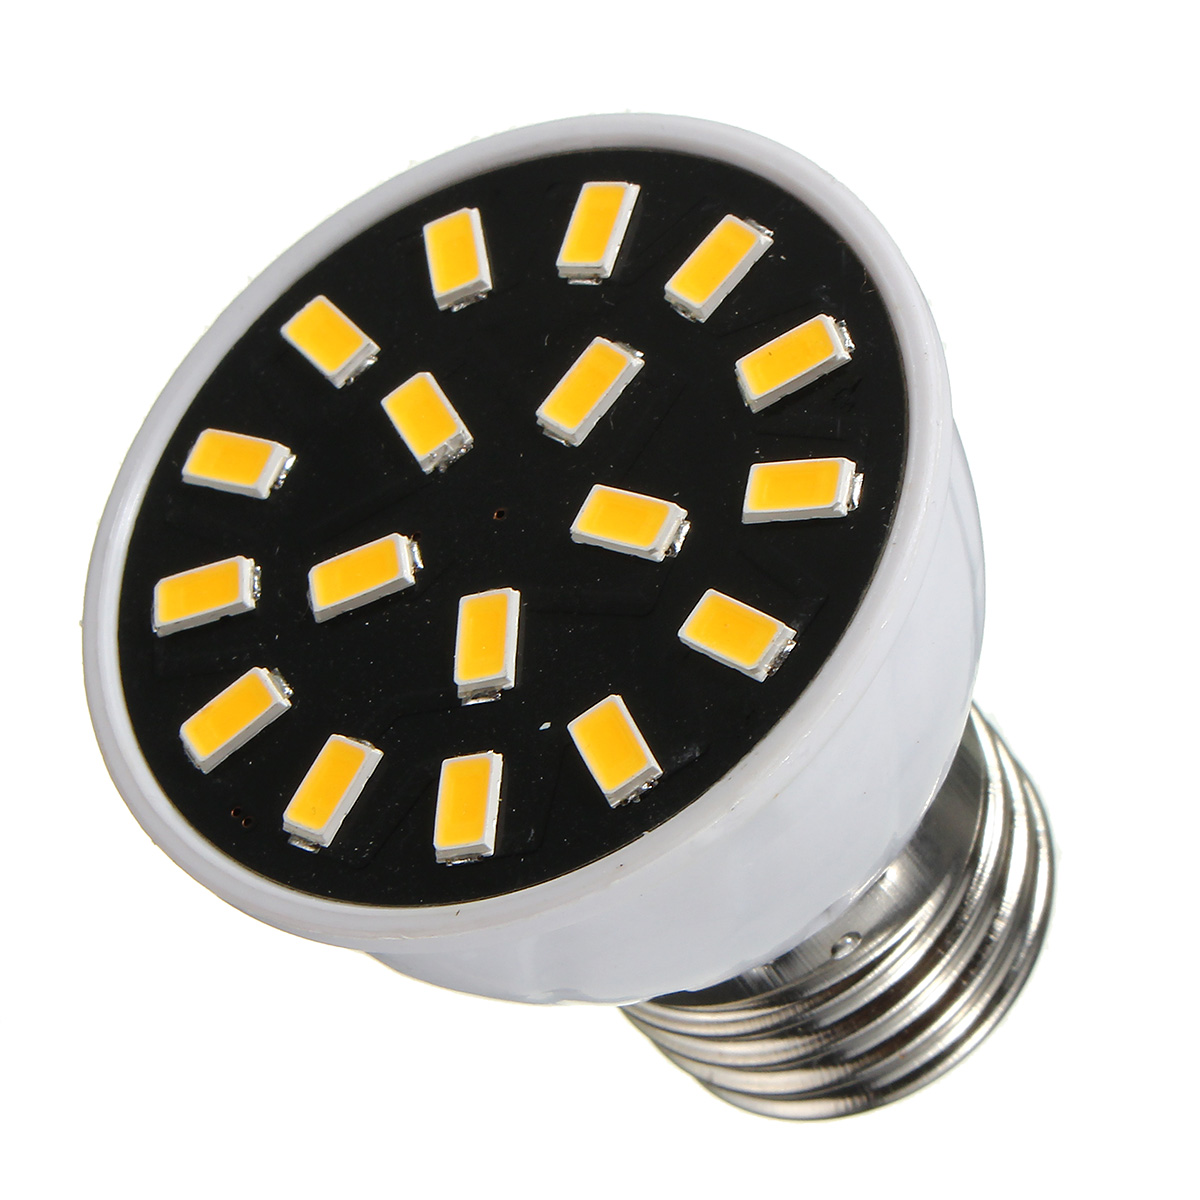 MR16 E27 GU10 LED Light Bulbs 5733 SMD 18 320LM Pure White Warm White Spot Lightt AC220V 3W